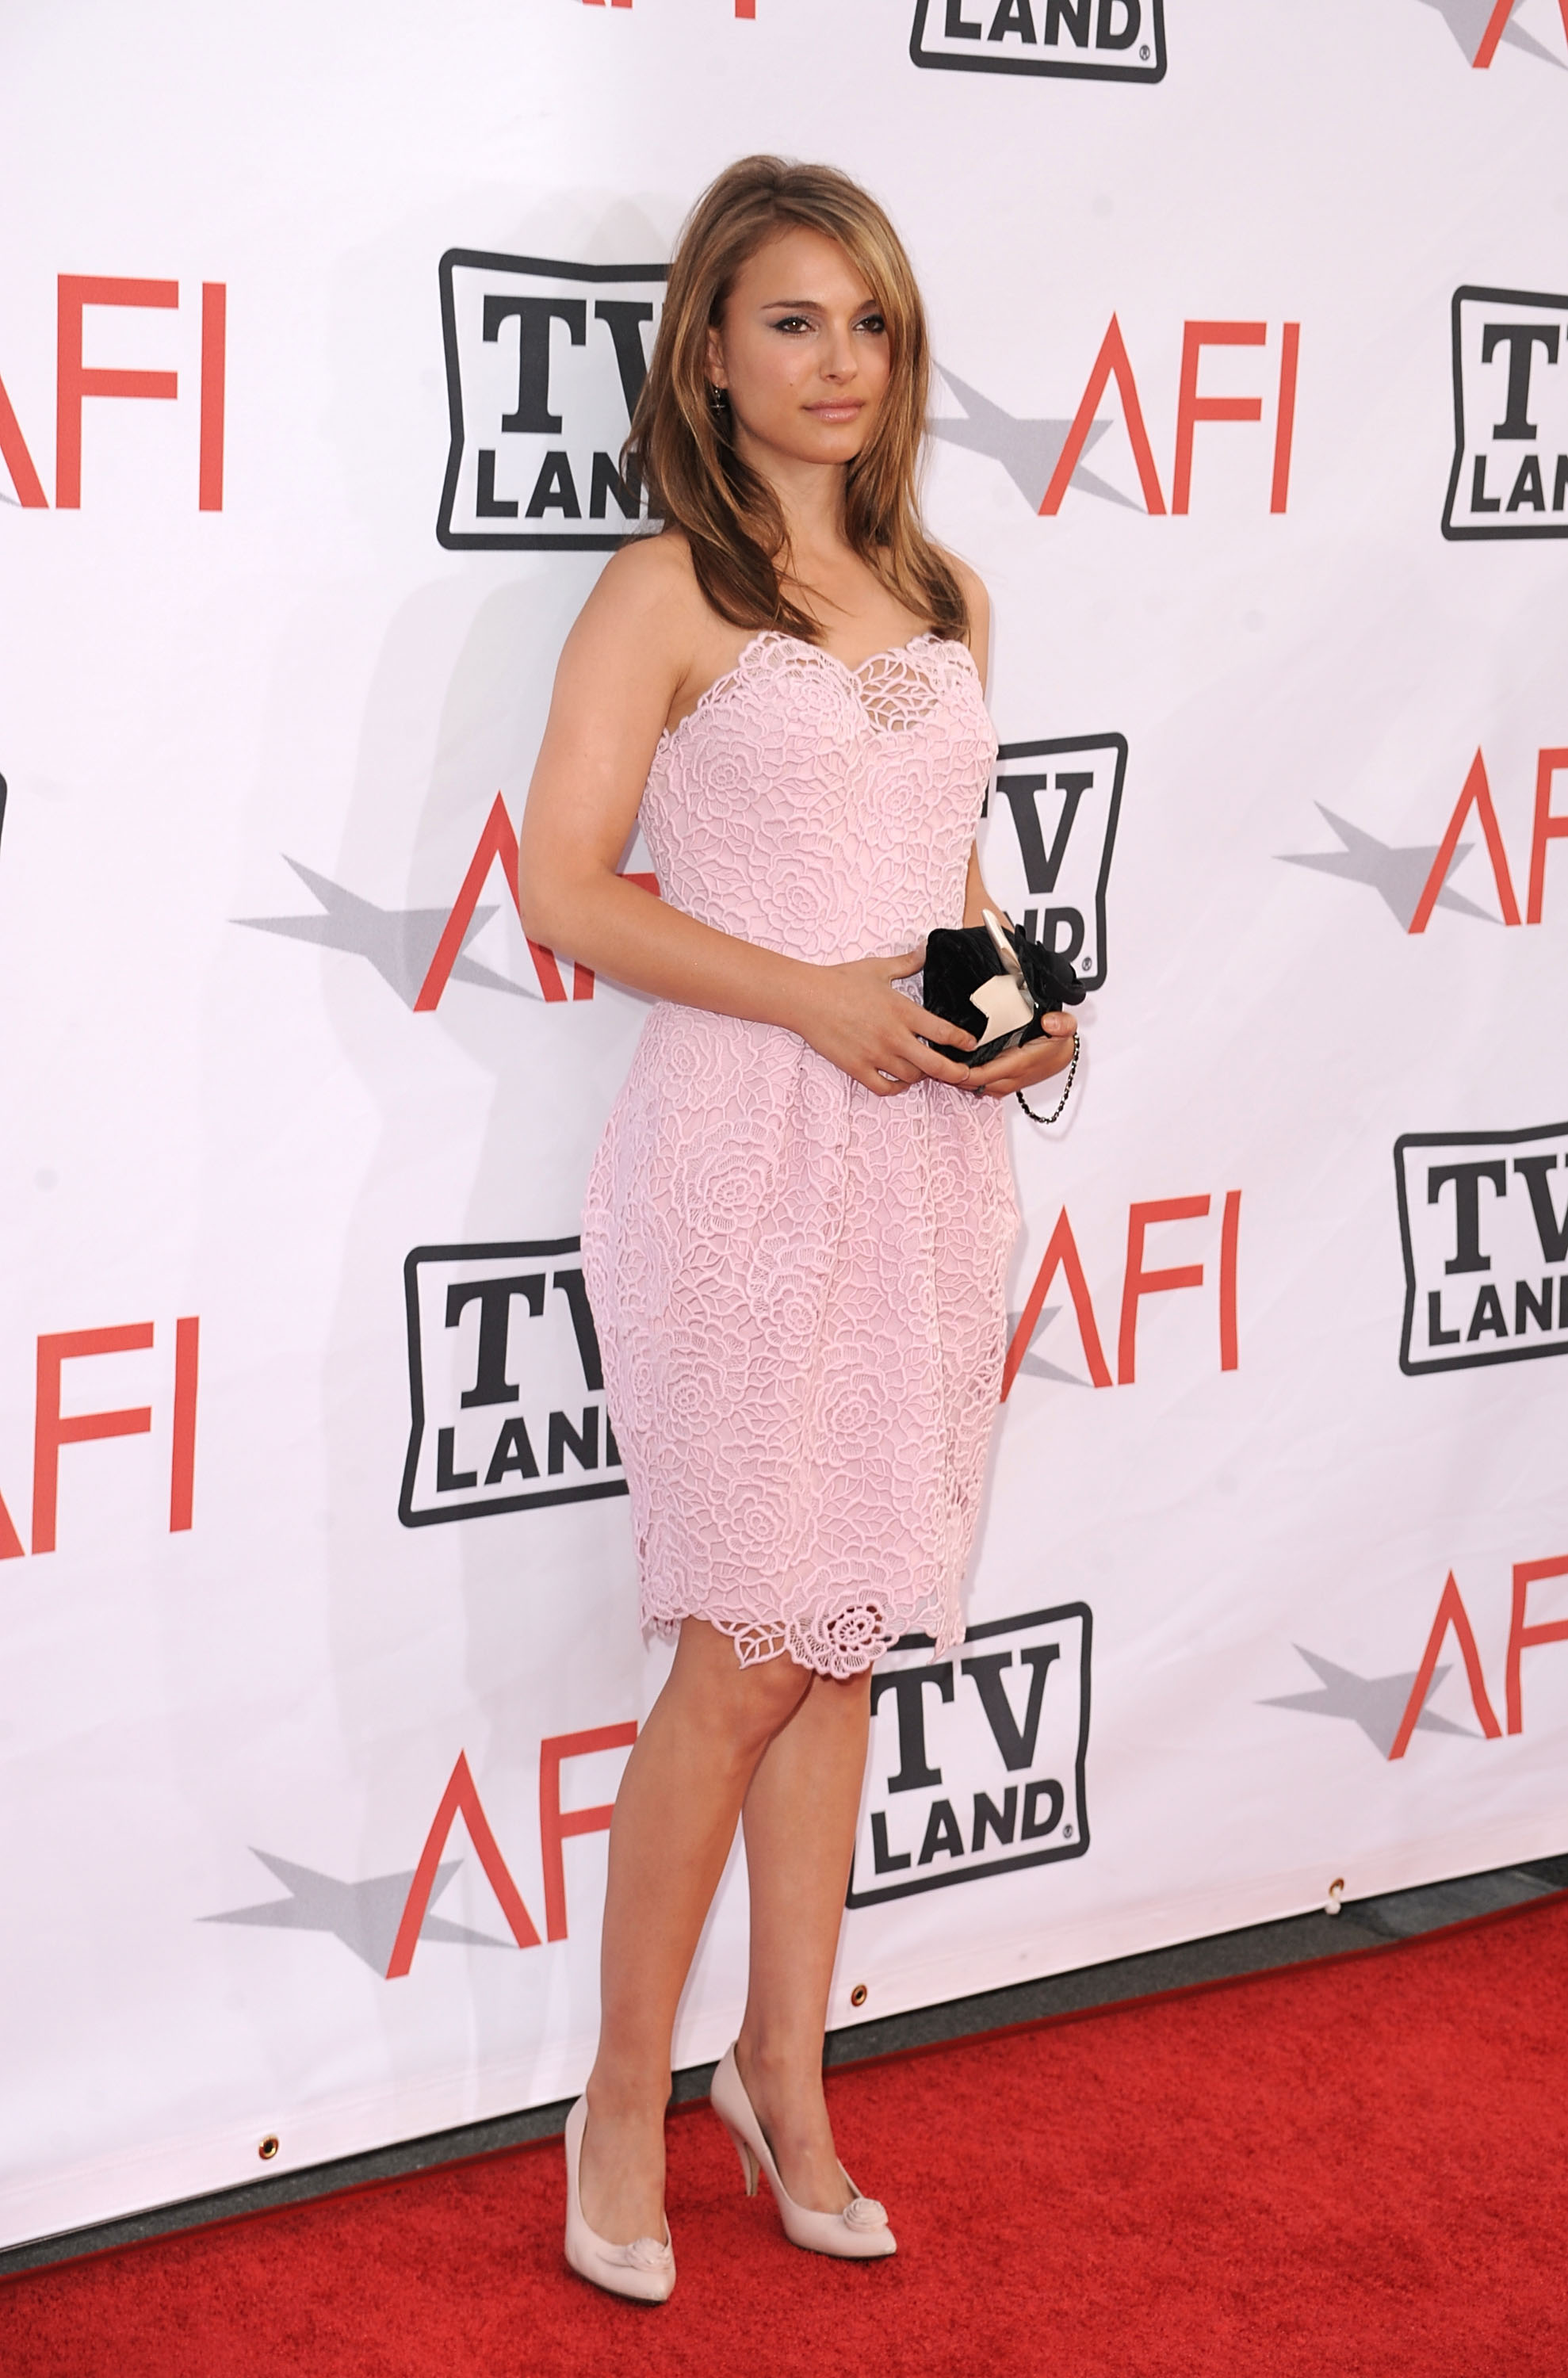 02328_Natalie_Portman_38th_afi_life_achievement_award_106_122_410lo.jpg